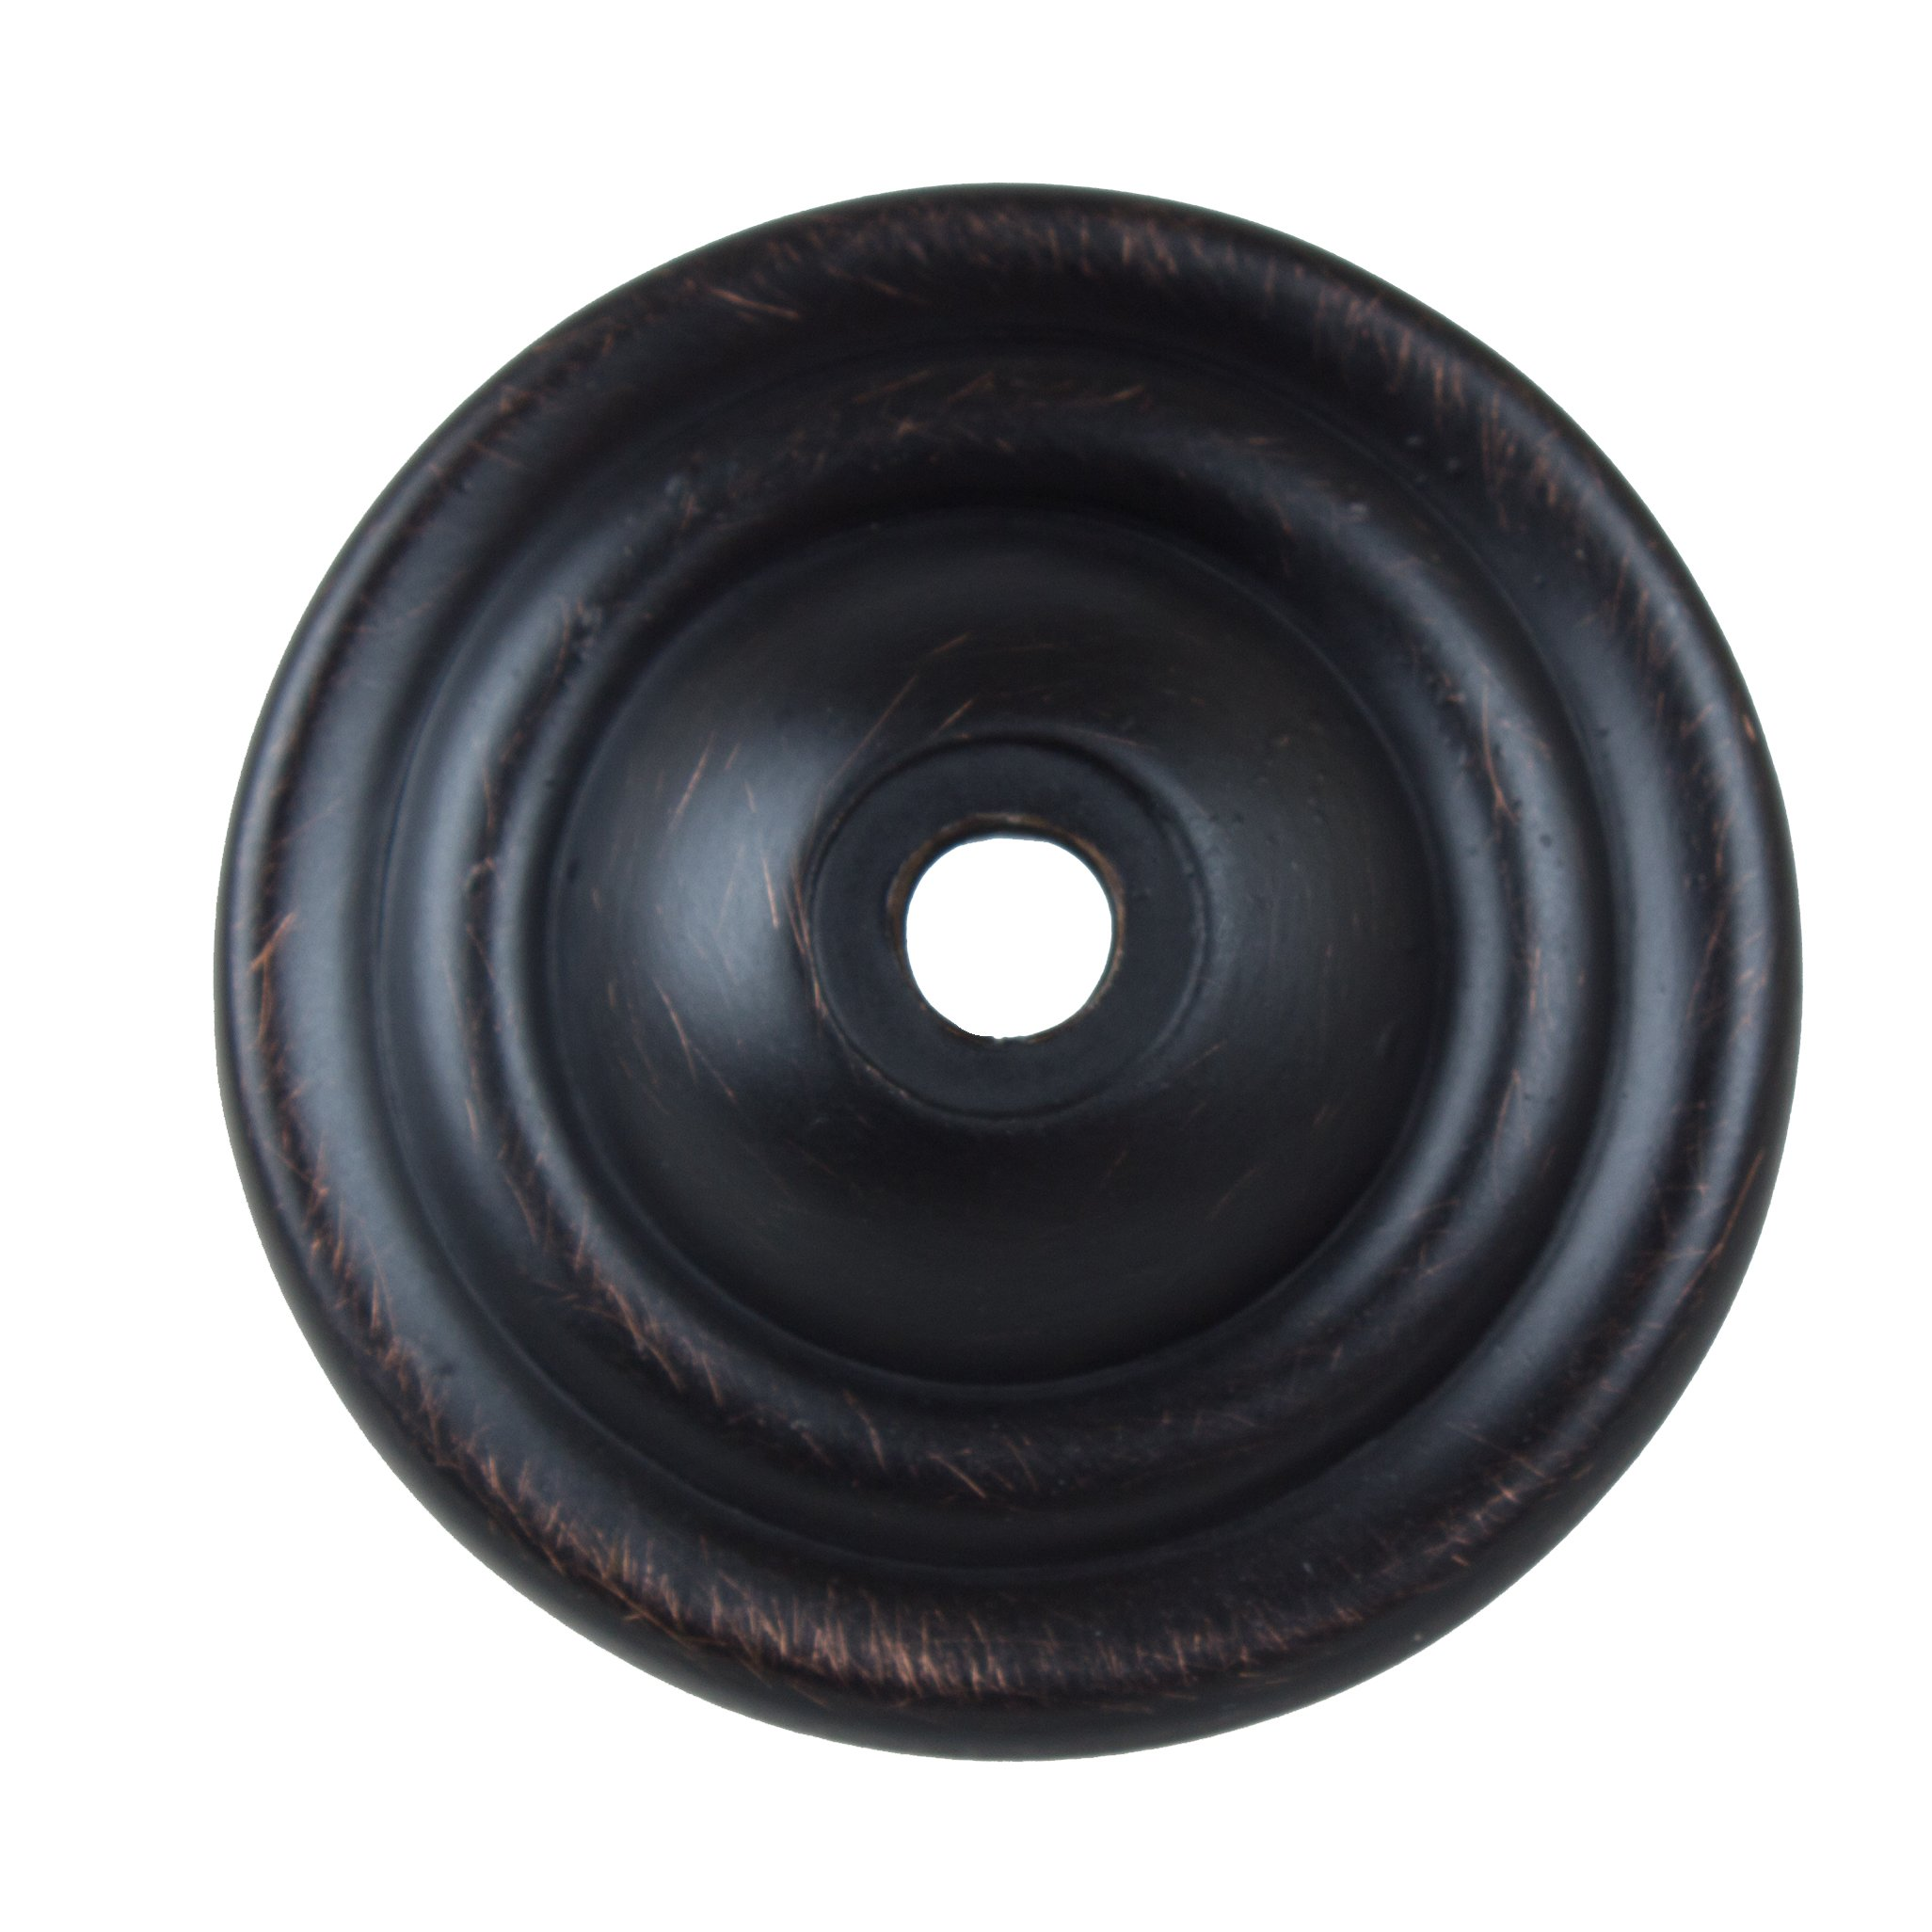 GlideRite Hardware 5061-ORB-10 1.5 inch Thin Rounded Oil Rubbed Bronze Ring Cabinet Back Plate 10 Pack